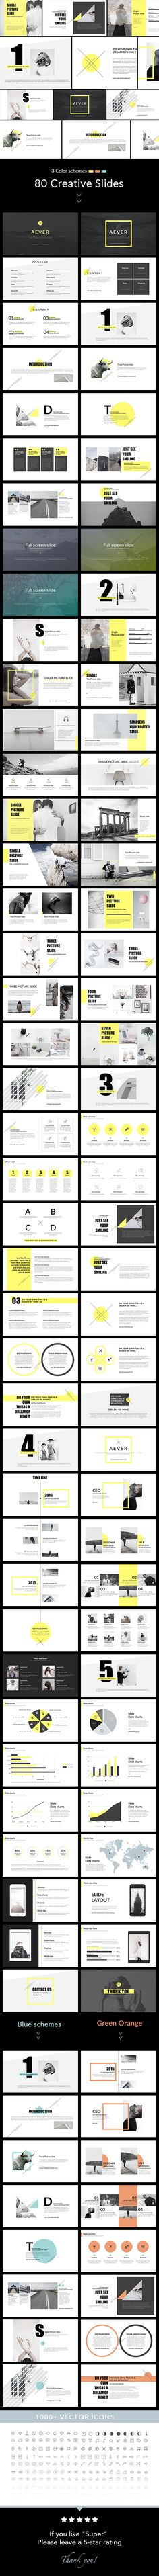 AEVER - PowerPoint Presentation Template. Download…